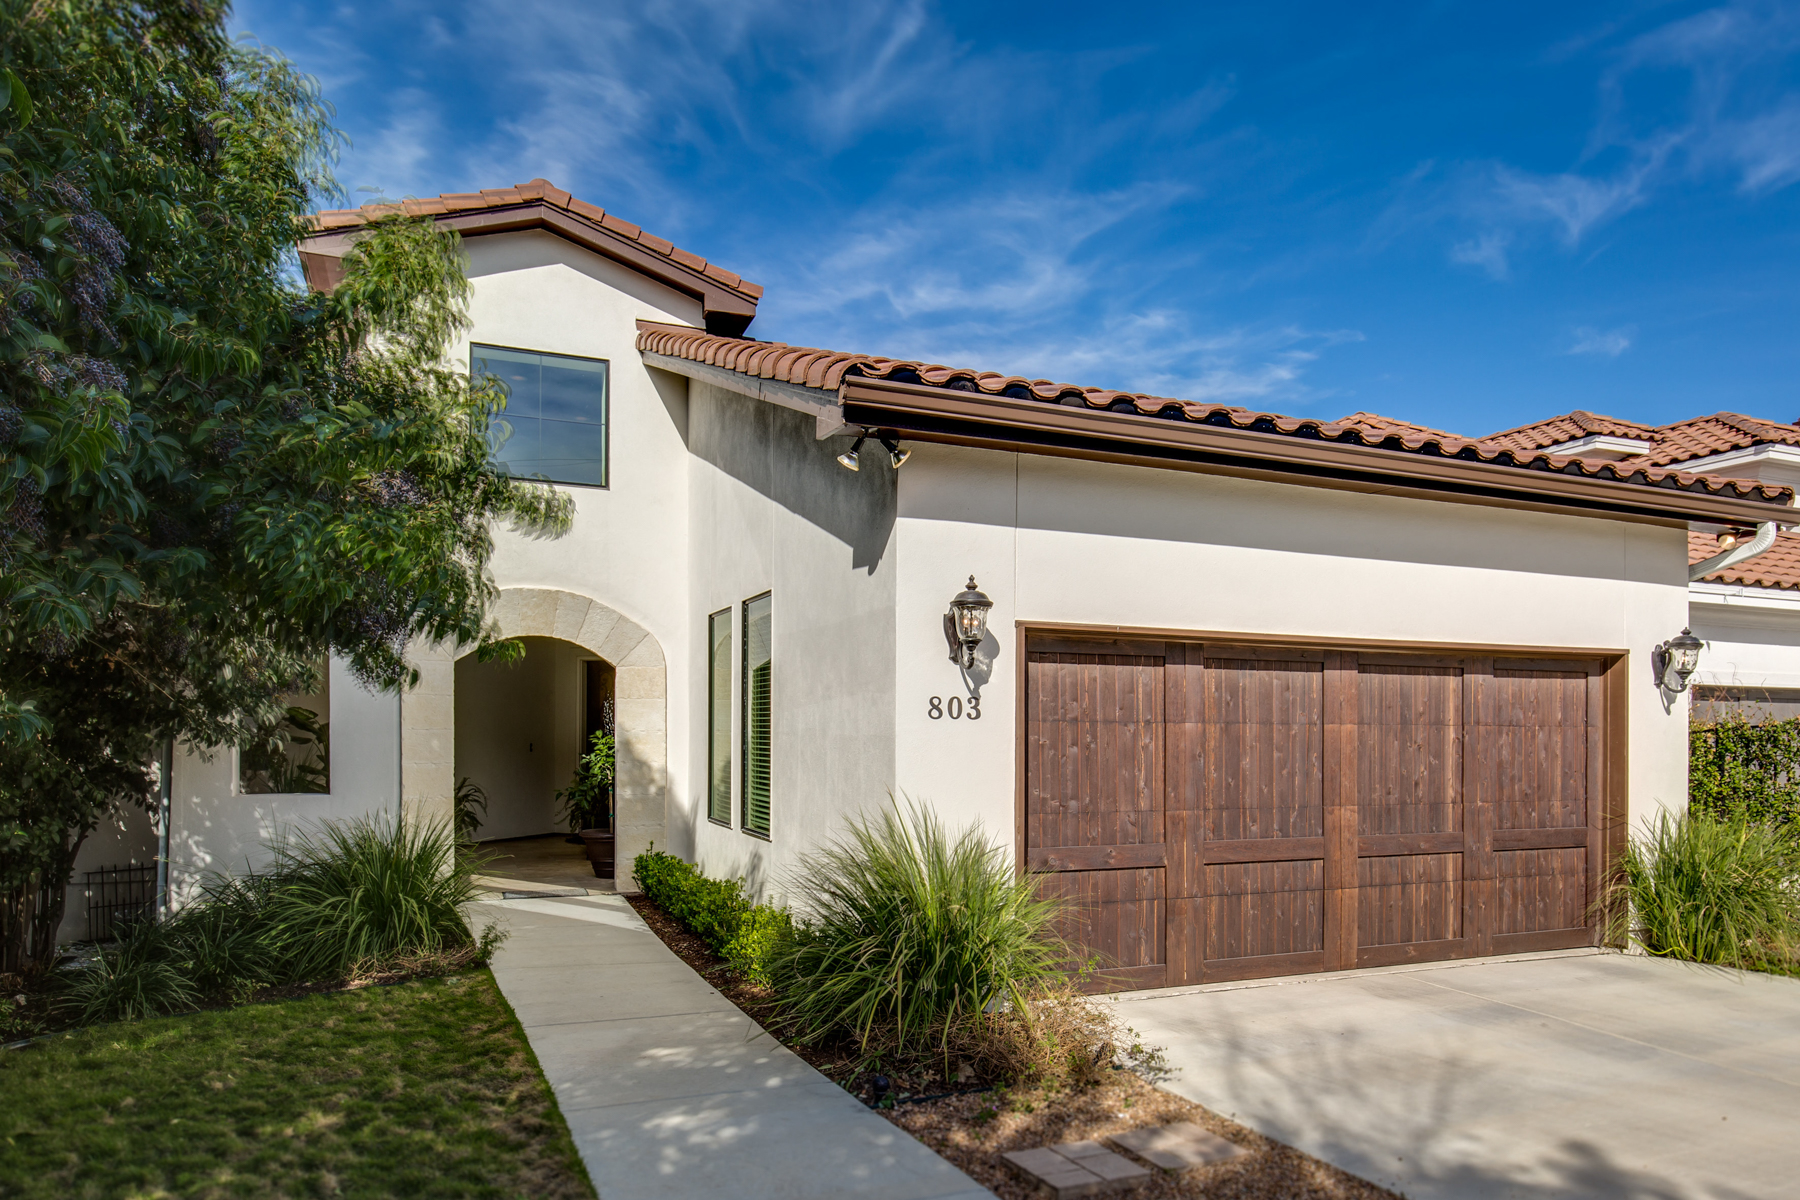 Single Family Home for Sale at Luxury Living in Mahncke Park 803 Austin Rd San Antonio, Texas 78209 United States